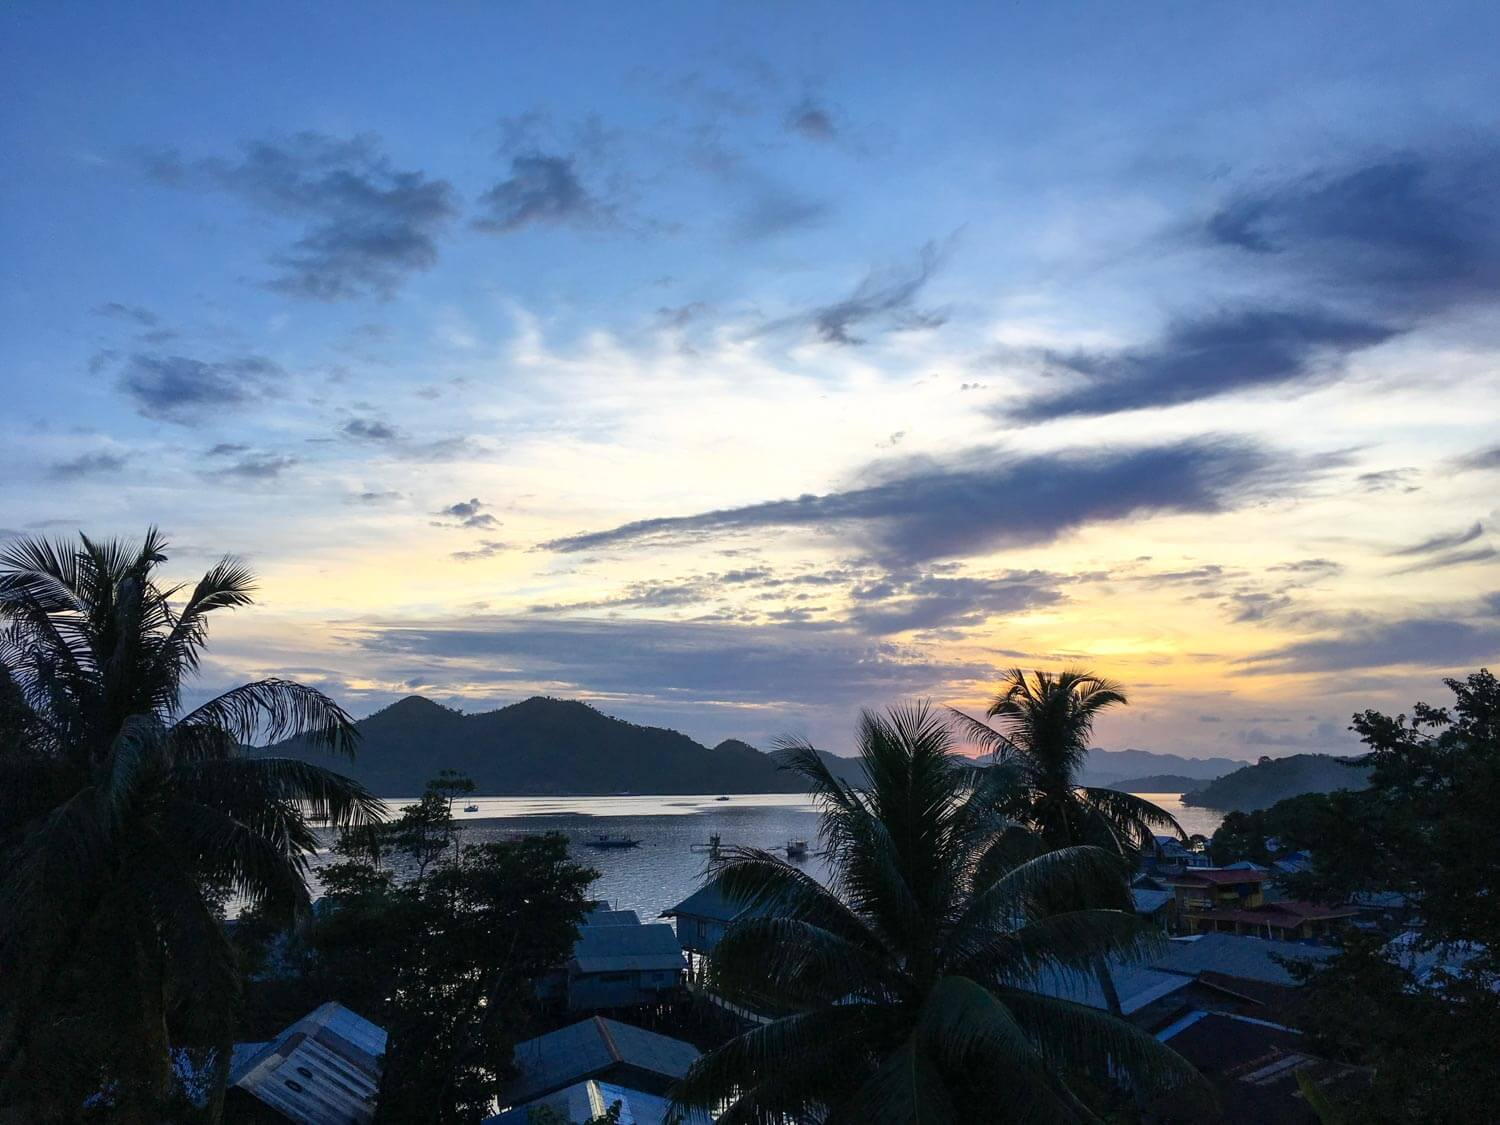 View from Levine's in Coron Town, Palawan